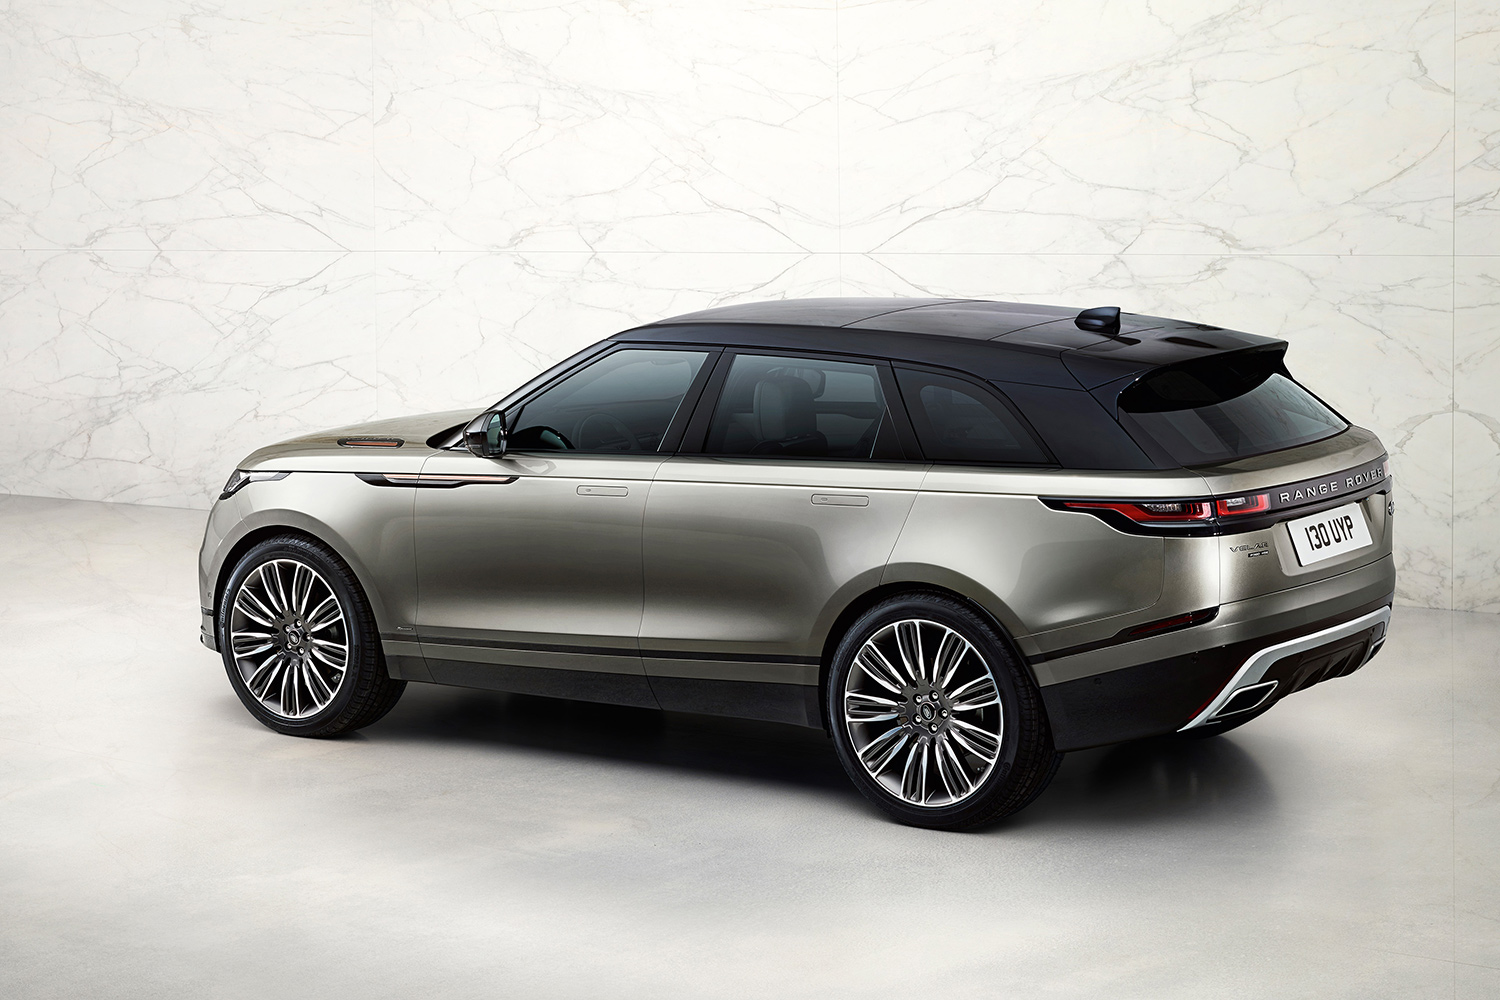 Land Rover Unveils New Range Rover Velar Vehicle Hypebeast